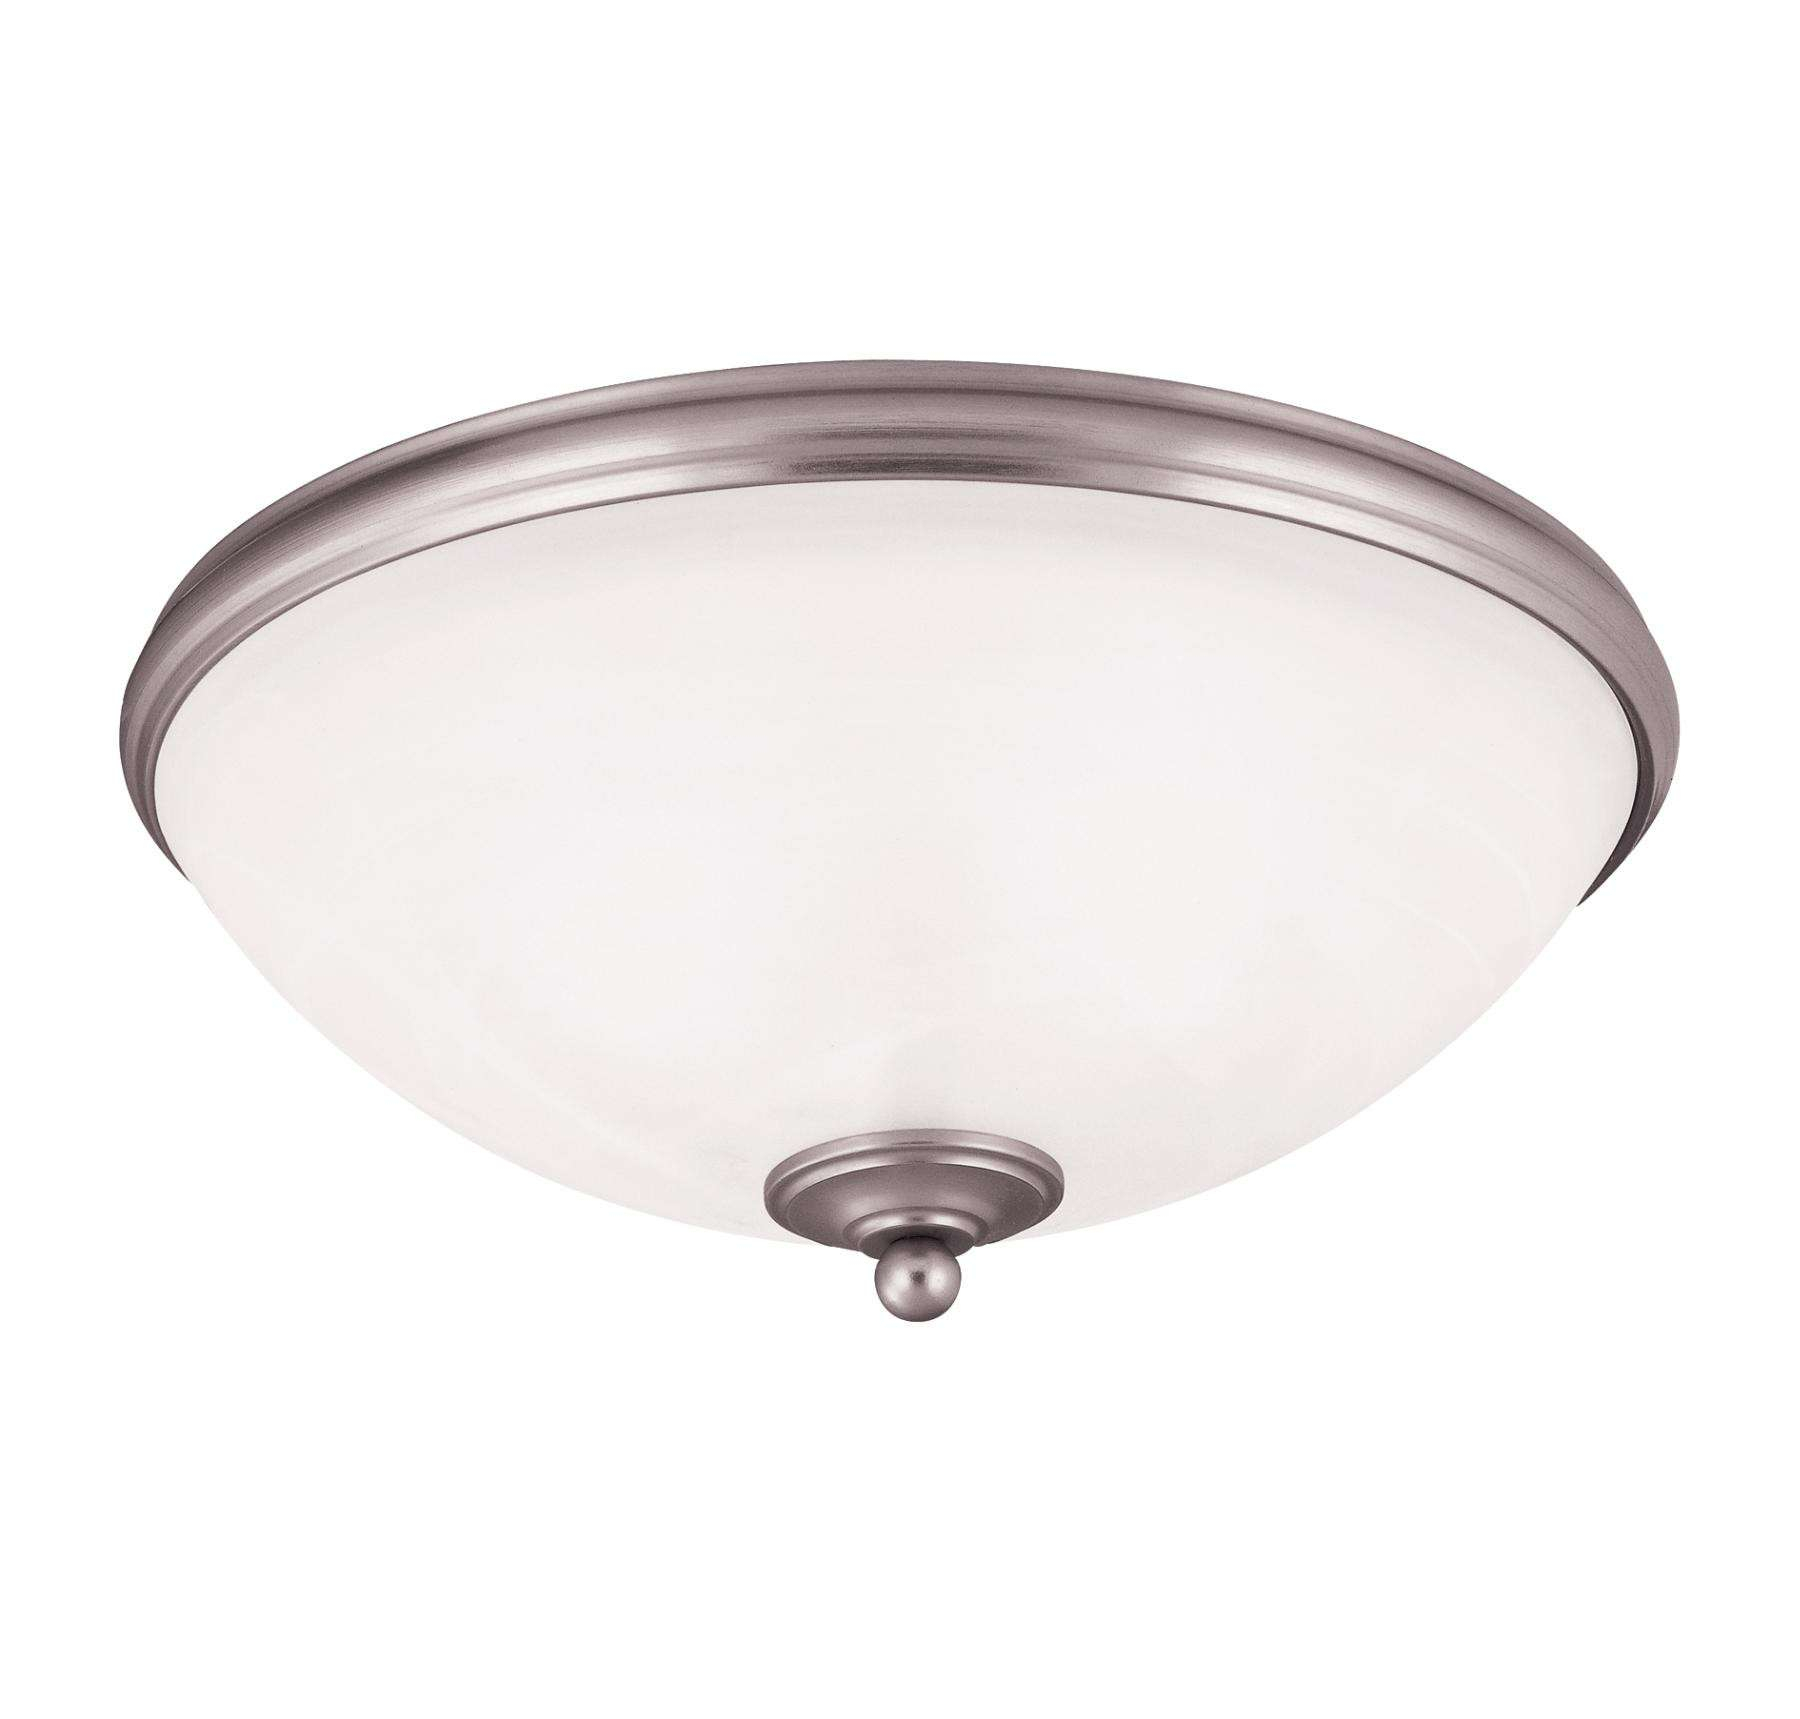 Savoy House 6-5787-15-69 Willoughby Flush Mount in Pewter Finish with White Marble glass